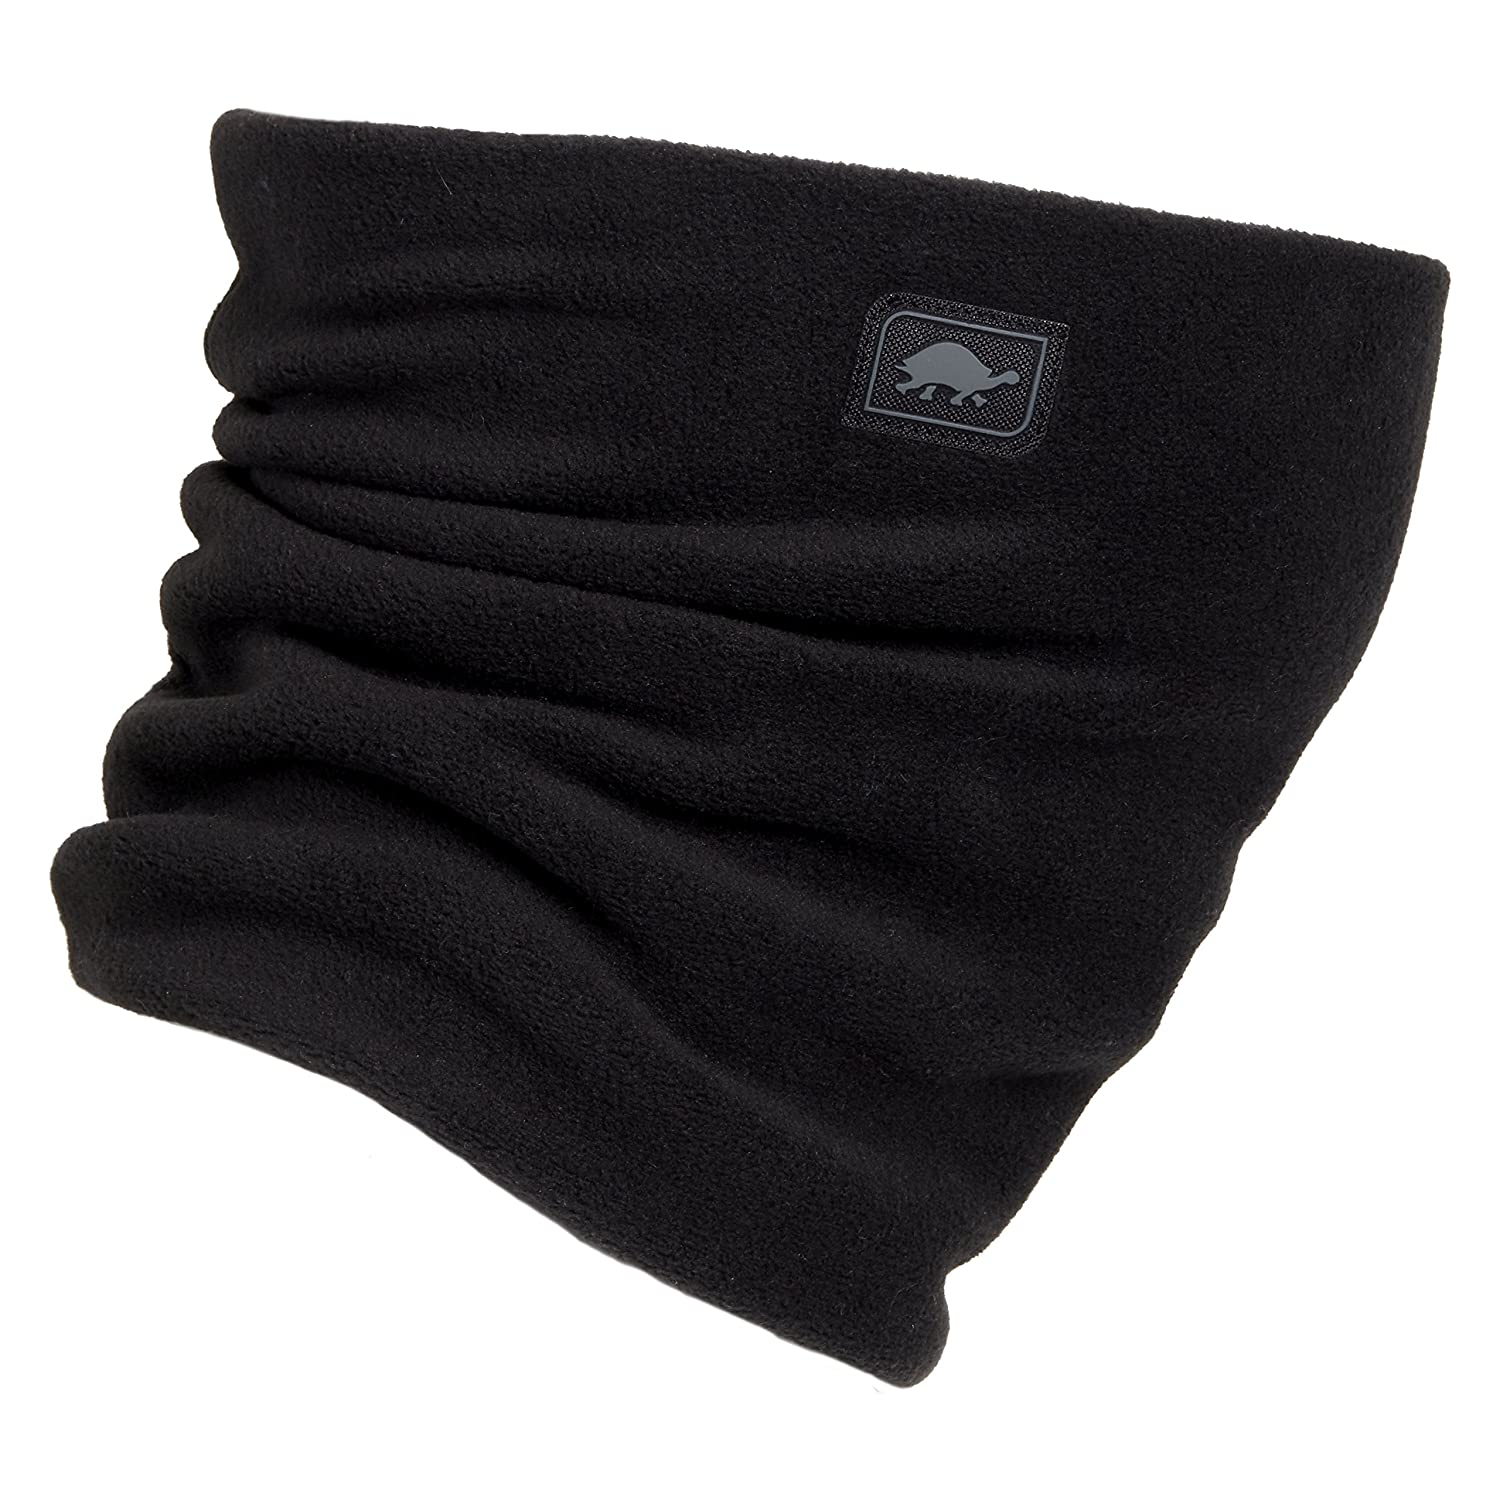 Turtle Fur Kids Chelonia 150 Classic Fleece Neck Warmer Black FBA_30336101